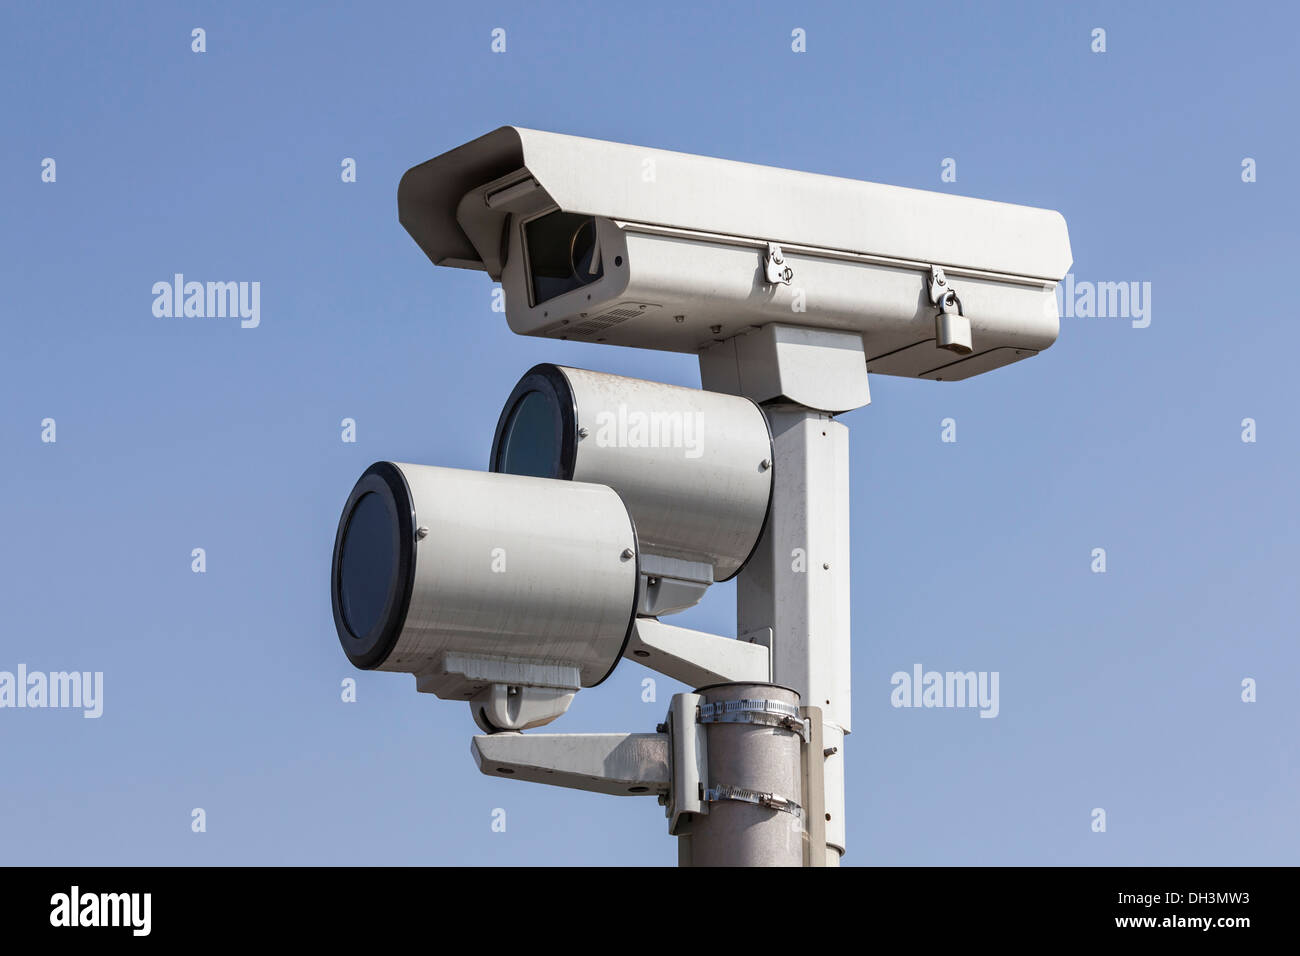 Traffic intersection signal surveillance camera with lights. - Stock Image